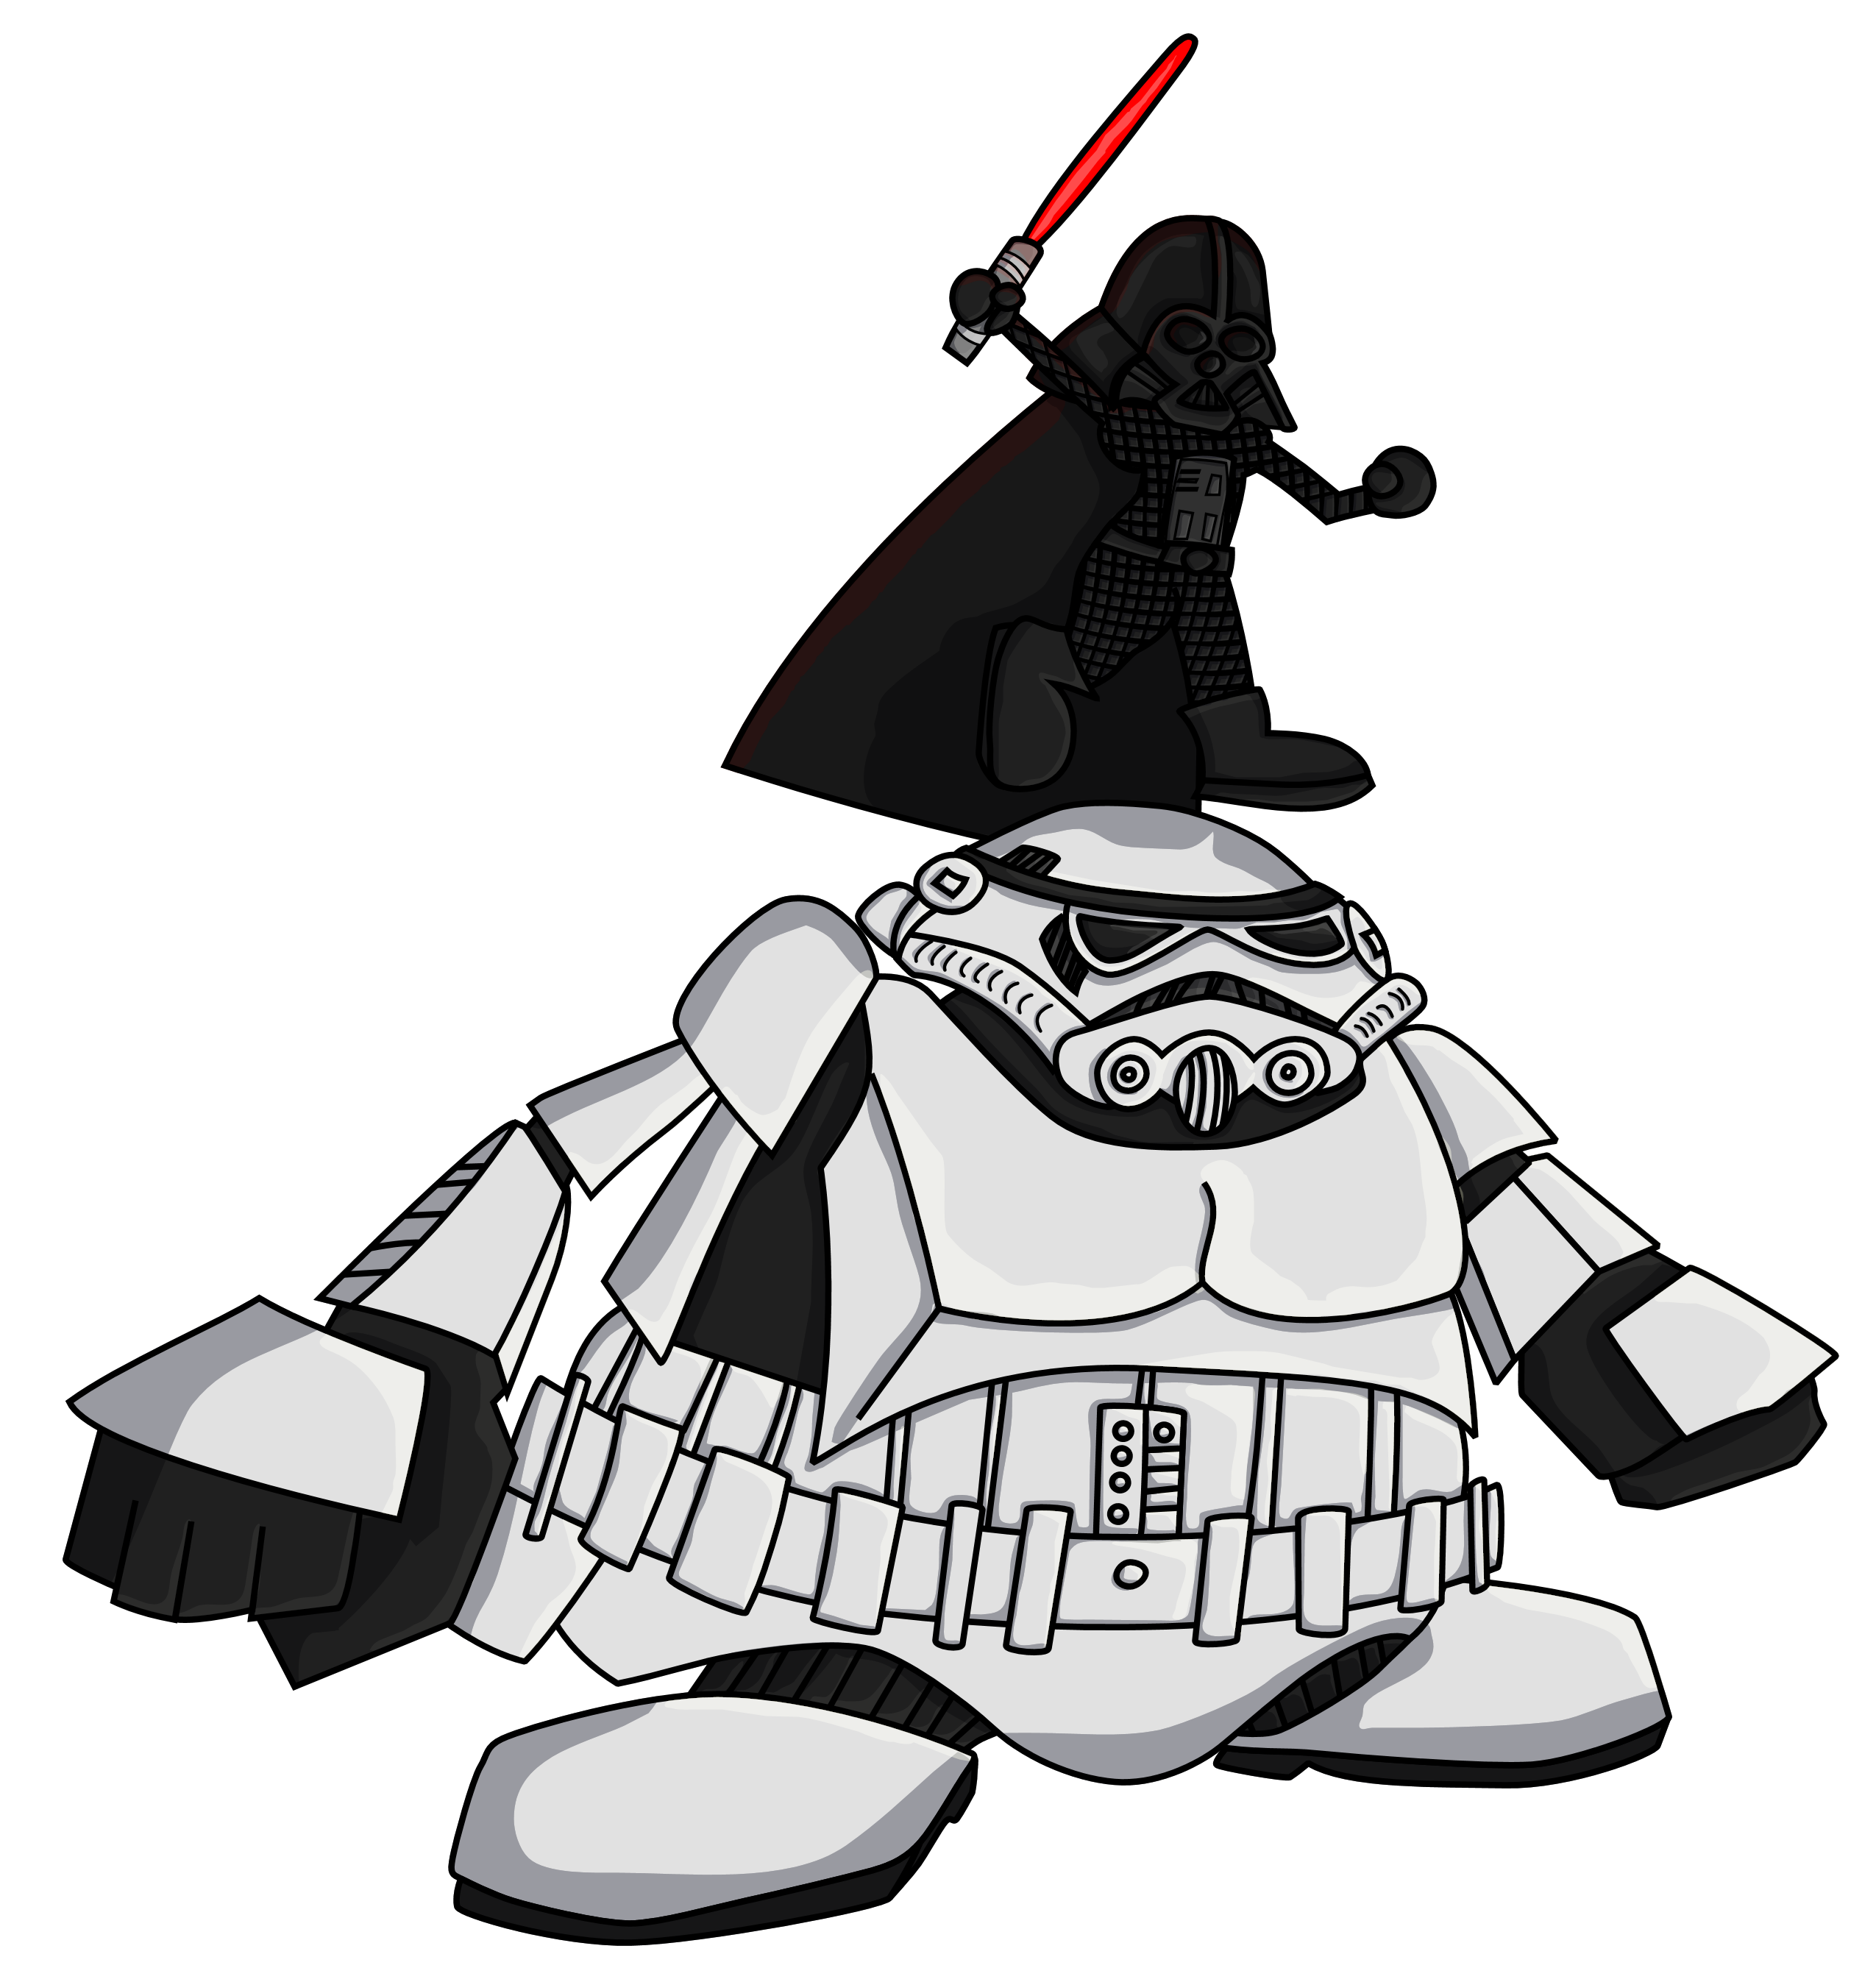 Star wars sith lord clipart clip royalty free download Star Wars x Final Fantasy VII] Cait Vader: Lord of the Sith ... clip royalty free download